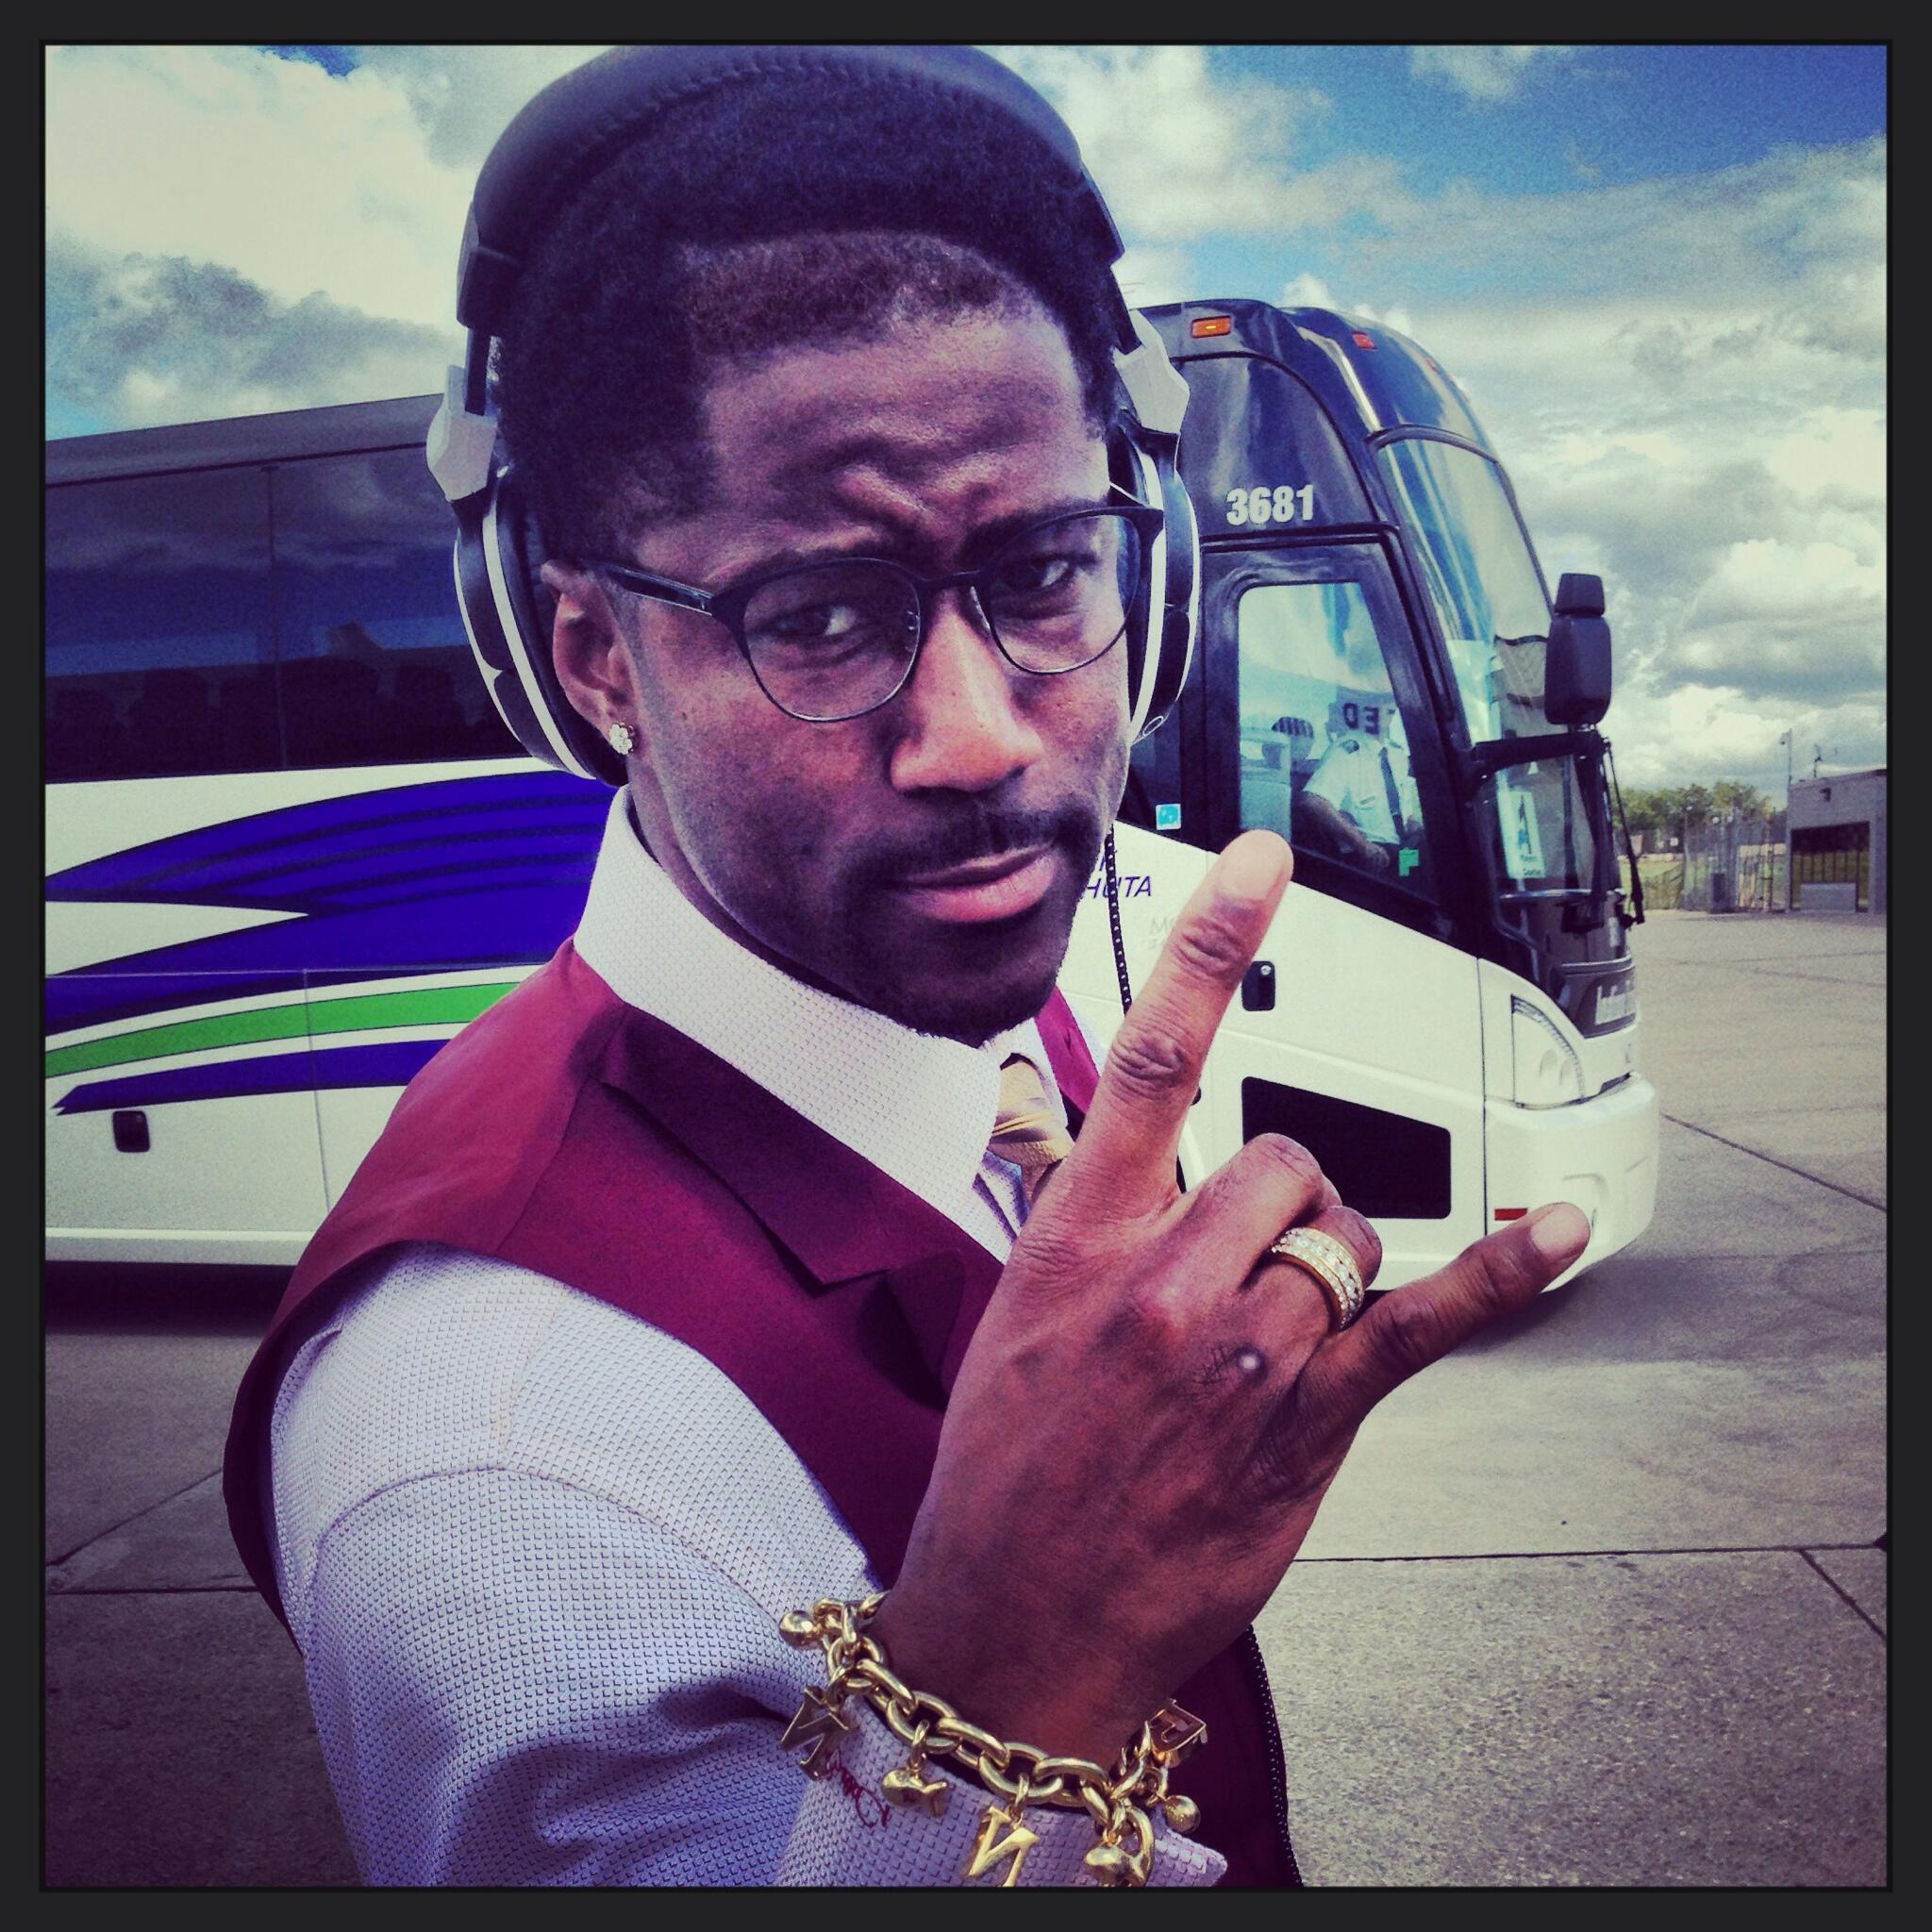 Headed to DC! @Nate13Burleson #DETvsWAS #OnePride http://t.co/hCbR5XXYj7